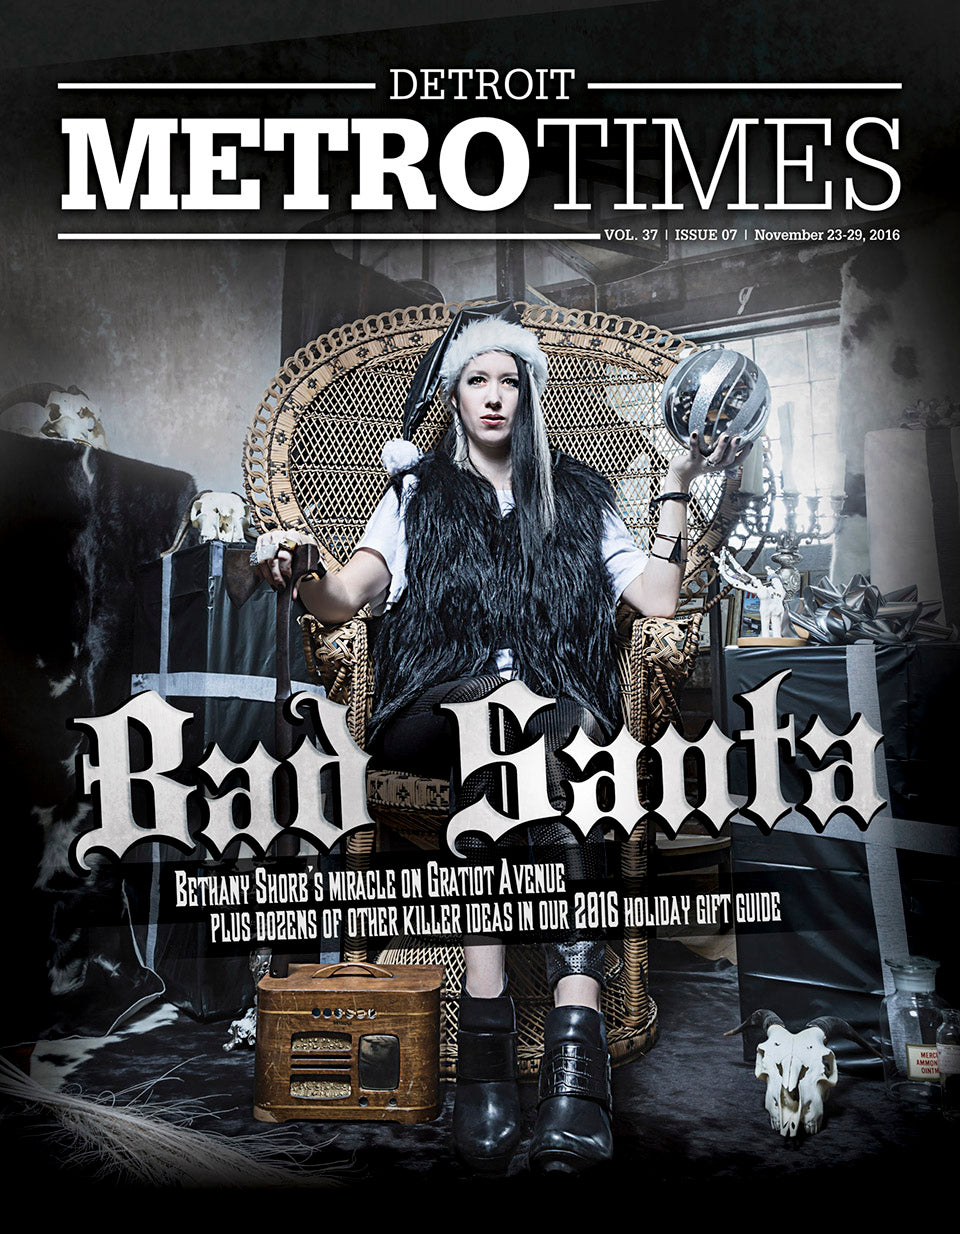 MetroTimes cover story well done goods cyberoptix bethany shorb